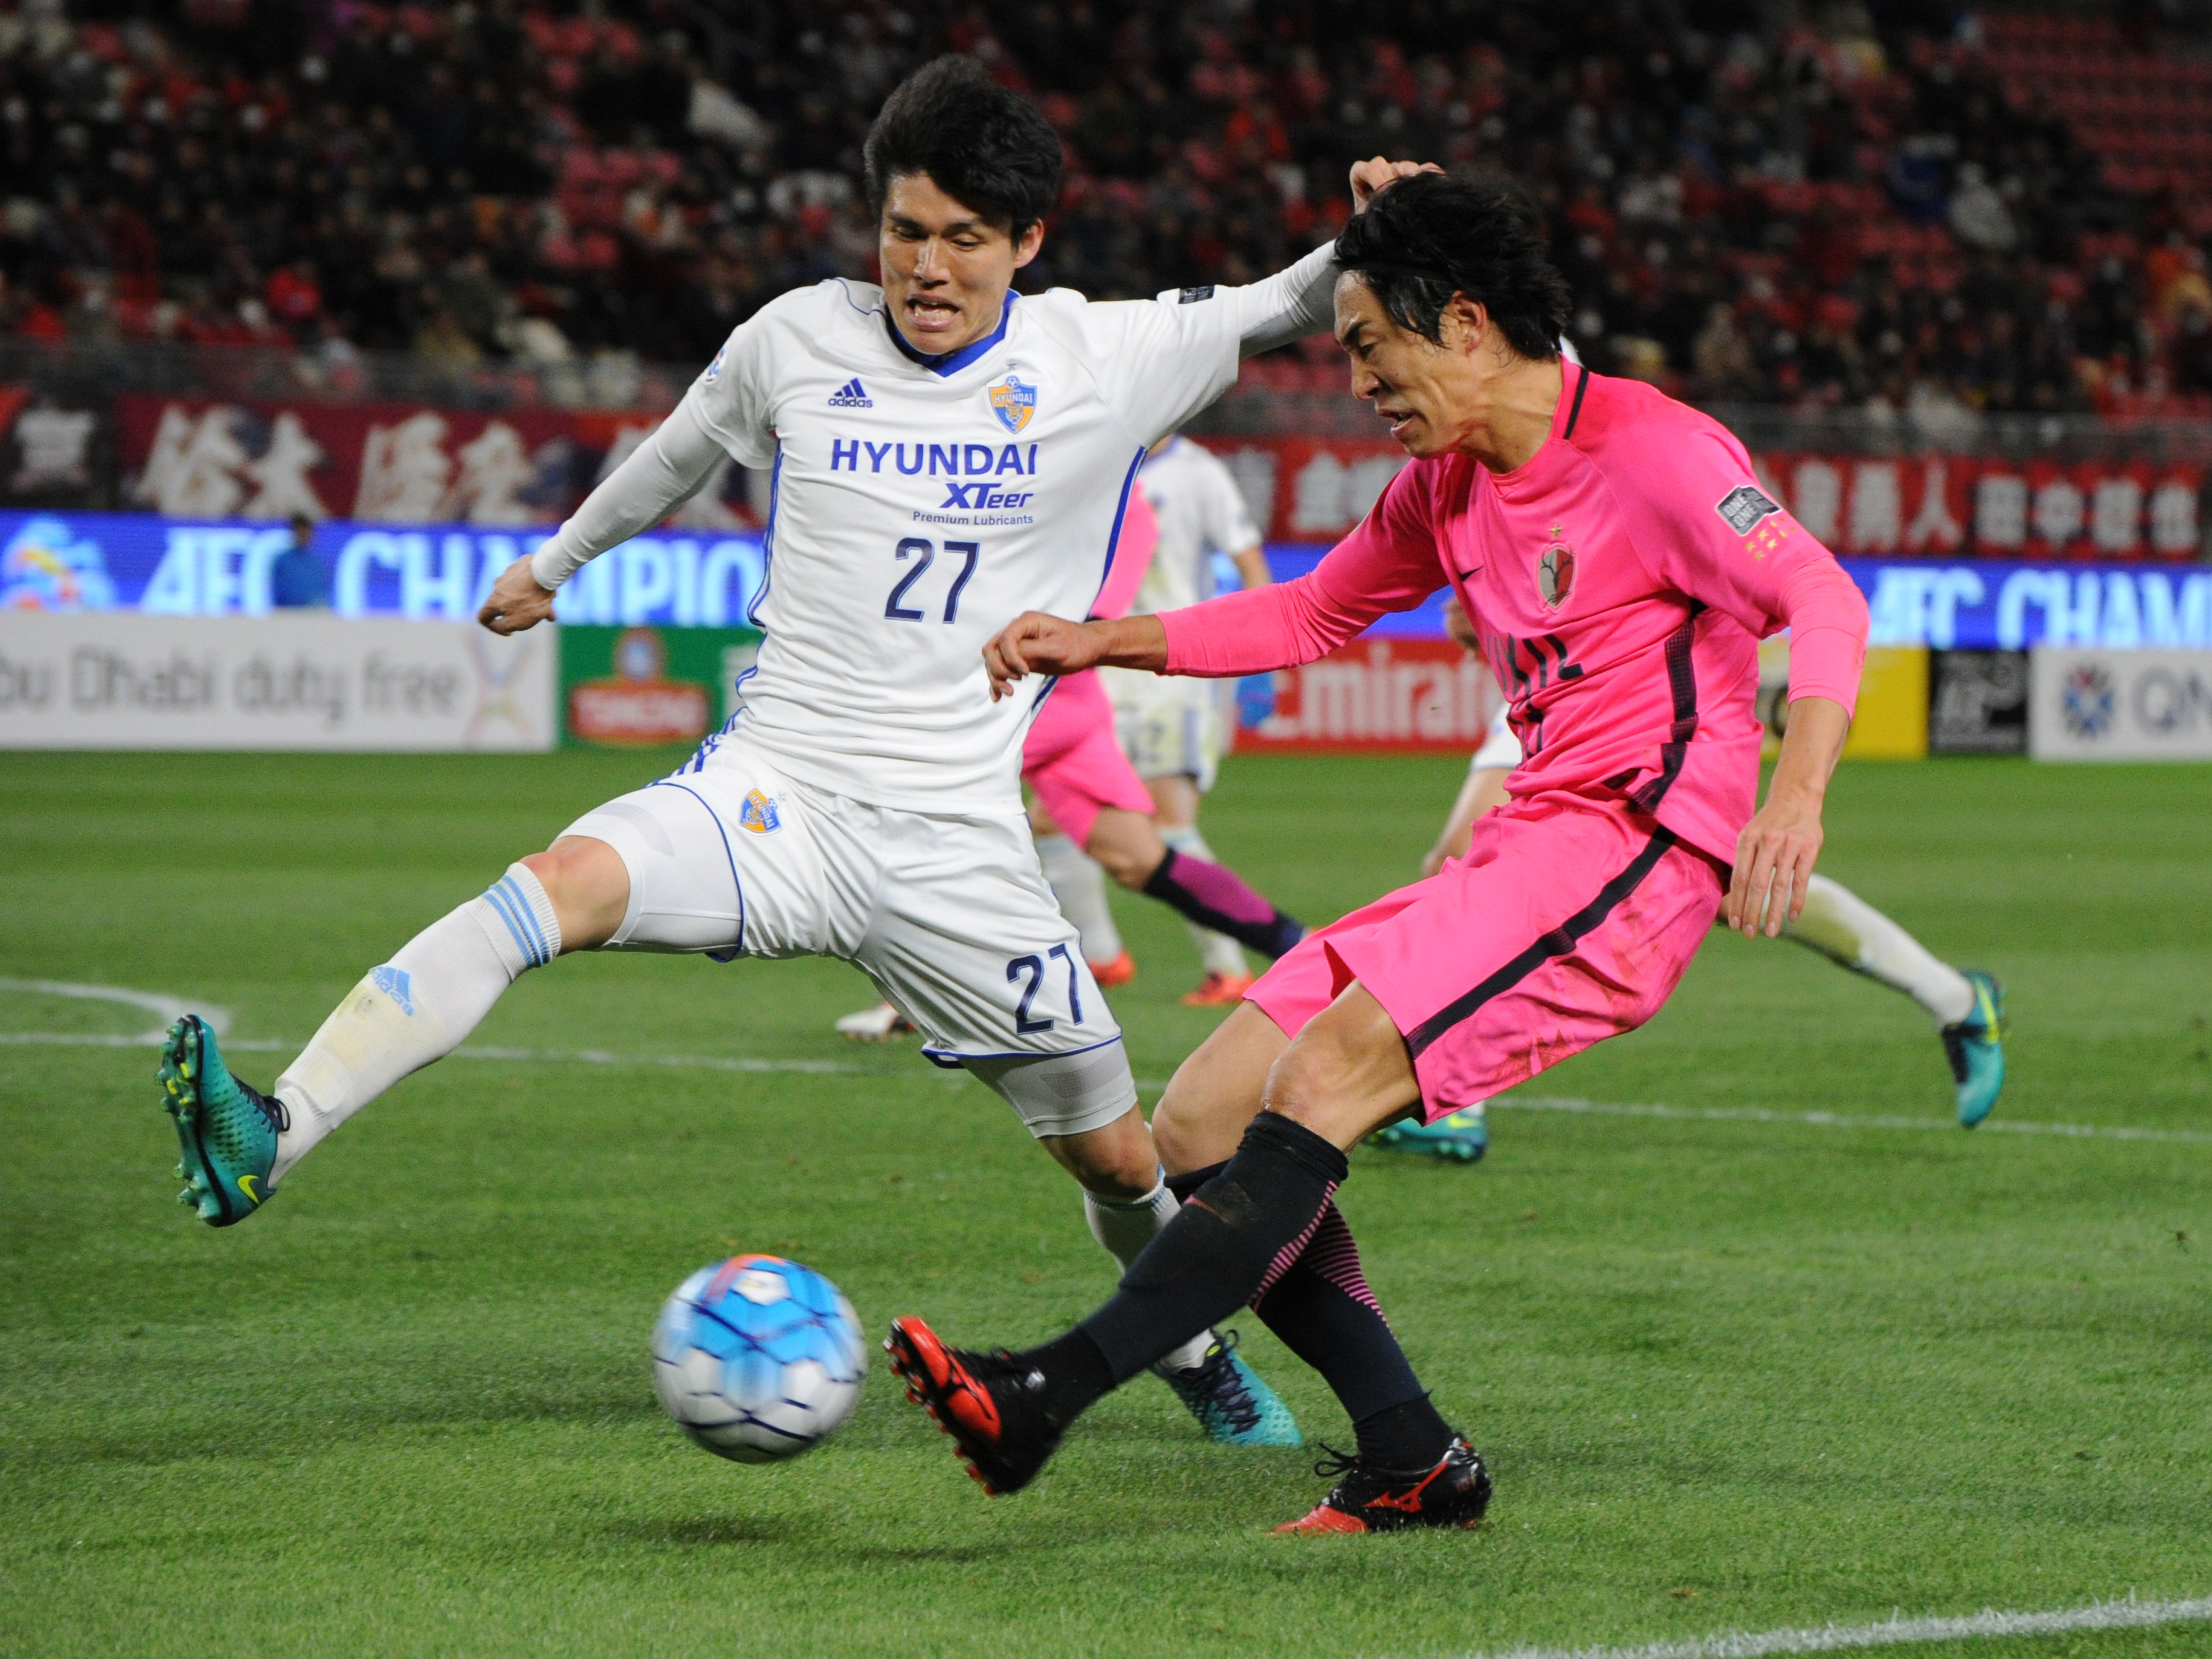 Mu Kanazaki of Kashima Antlers in action during the AFC Champions League Group E match between Kashima Antlers and Ulsan Hyndai at Kashima Soccer Stadium on February 21, 2017 in Kashima, Ibaraki, Japan